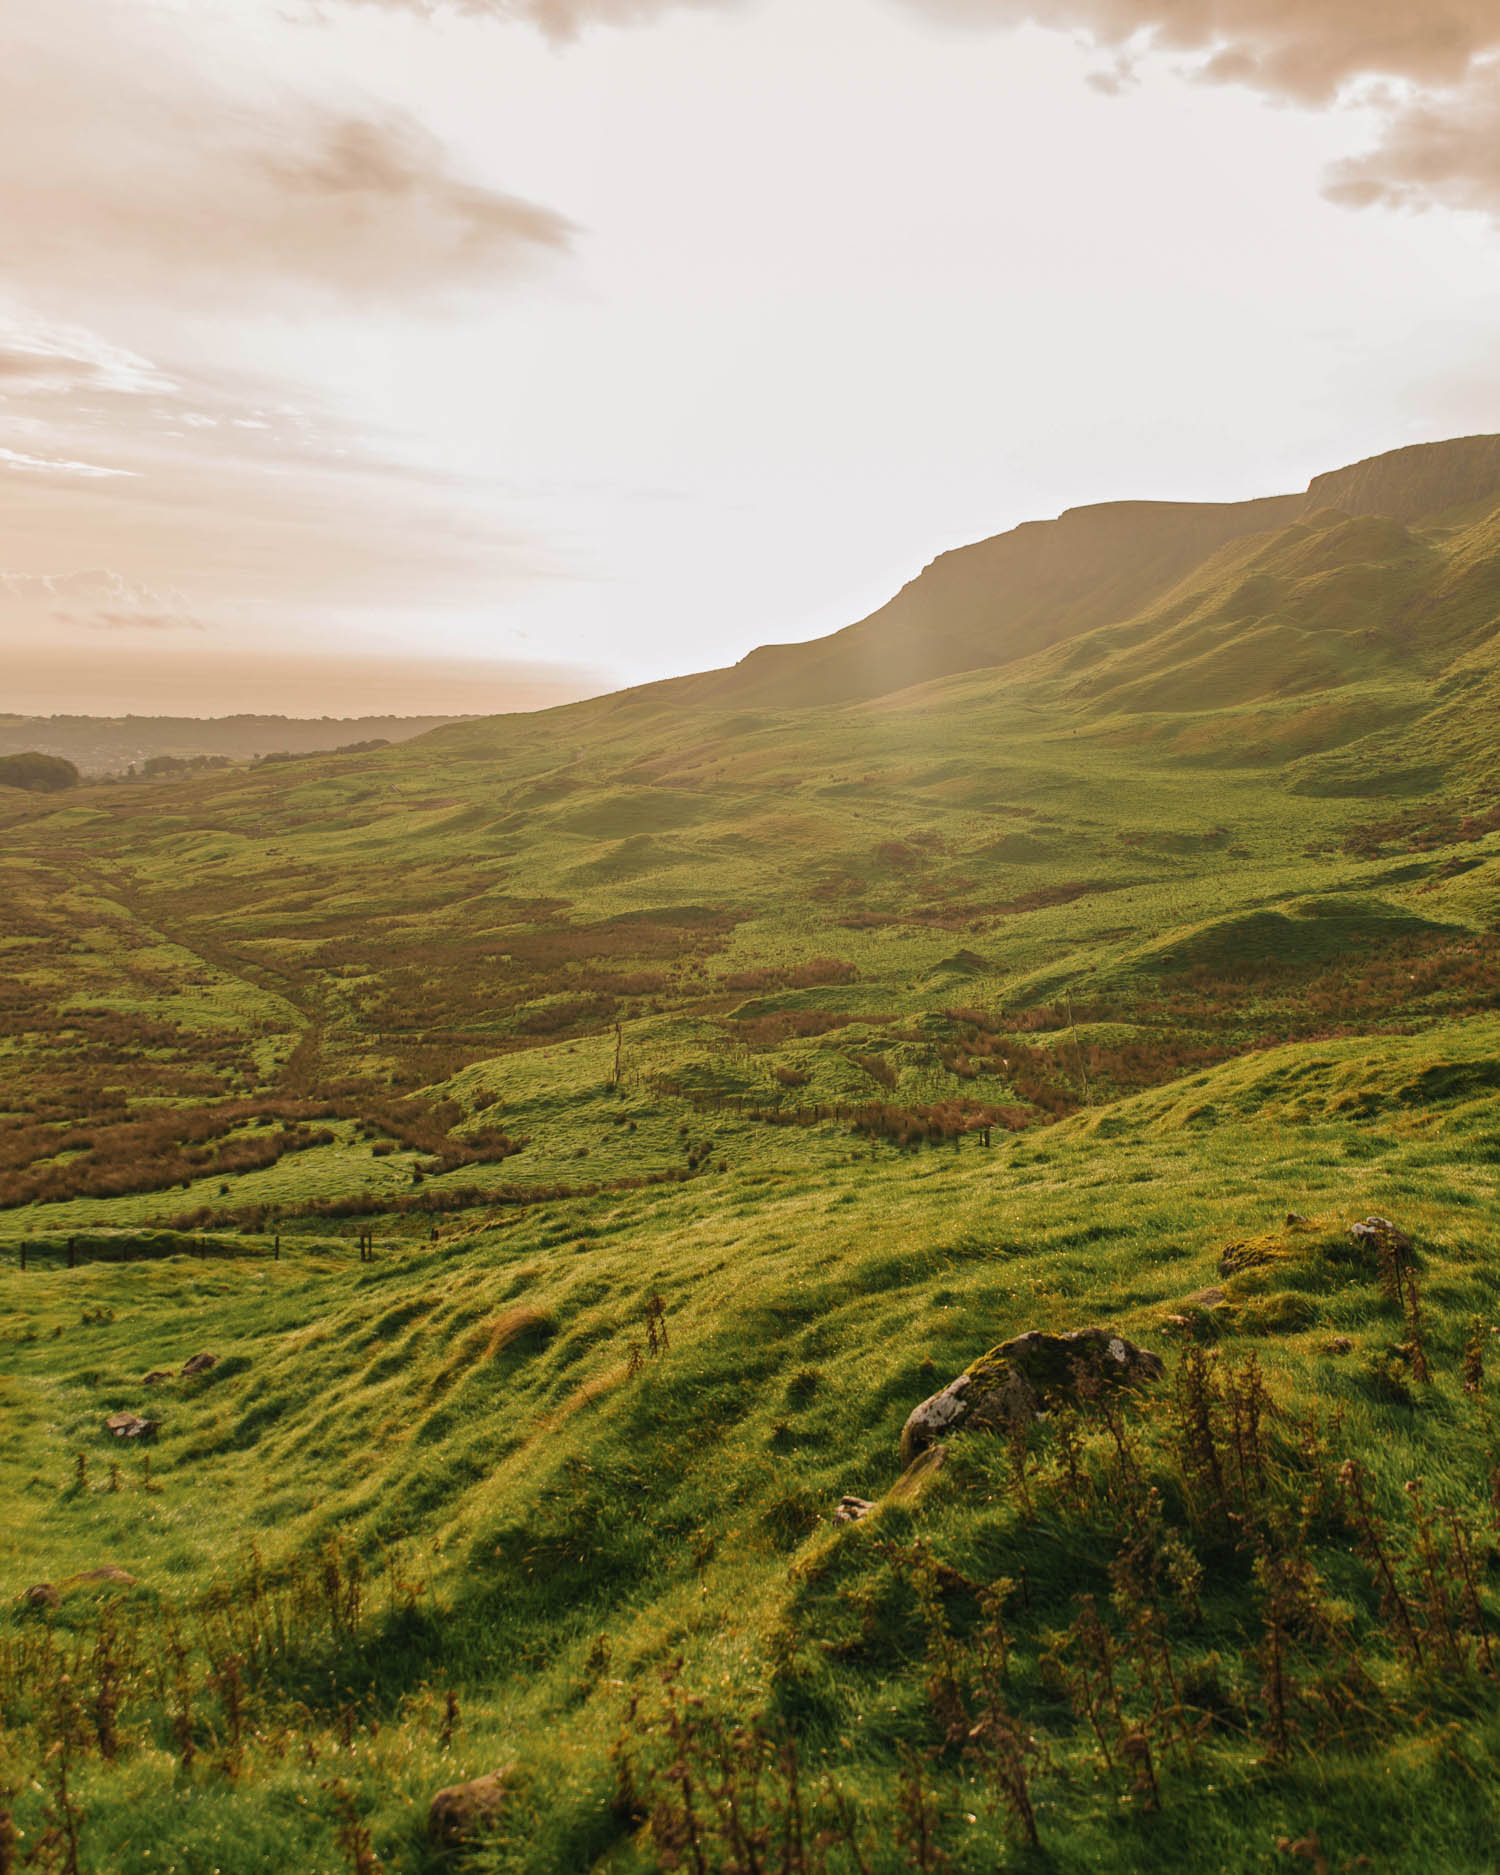 Antrim Hills - Game of Thrones Filming Location